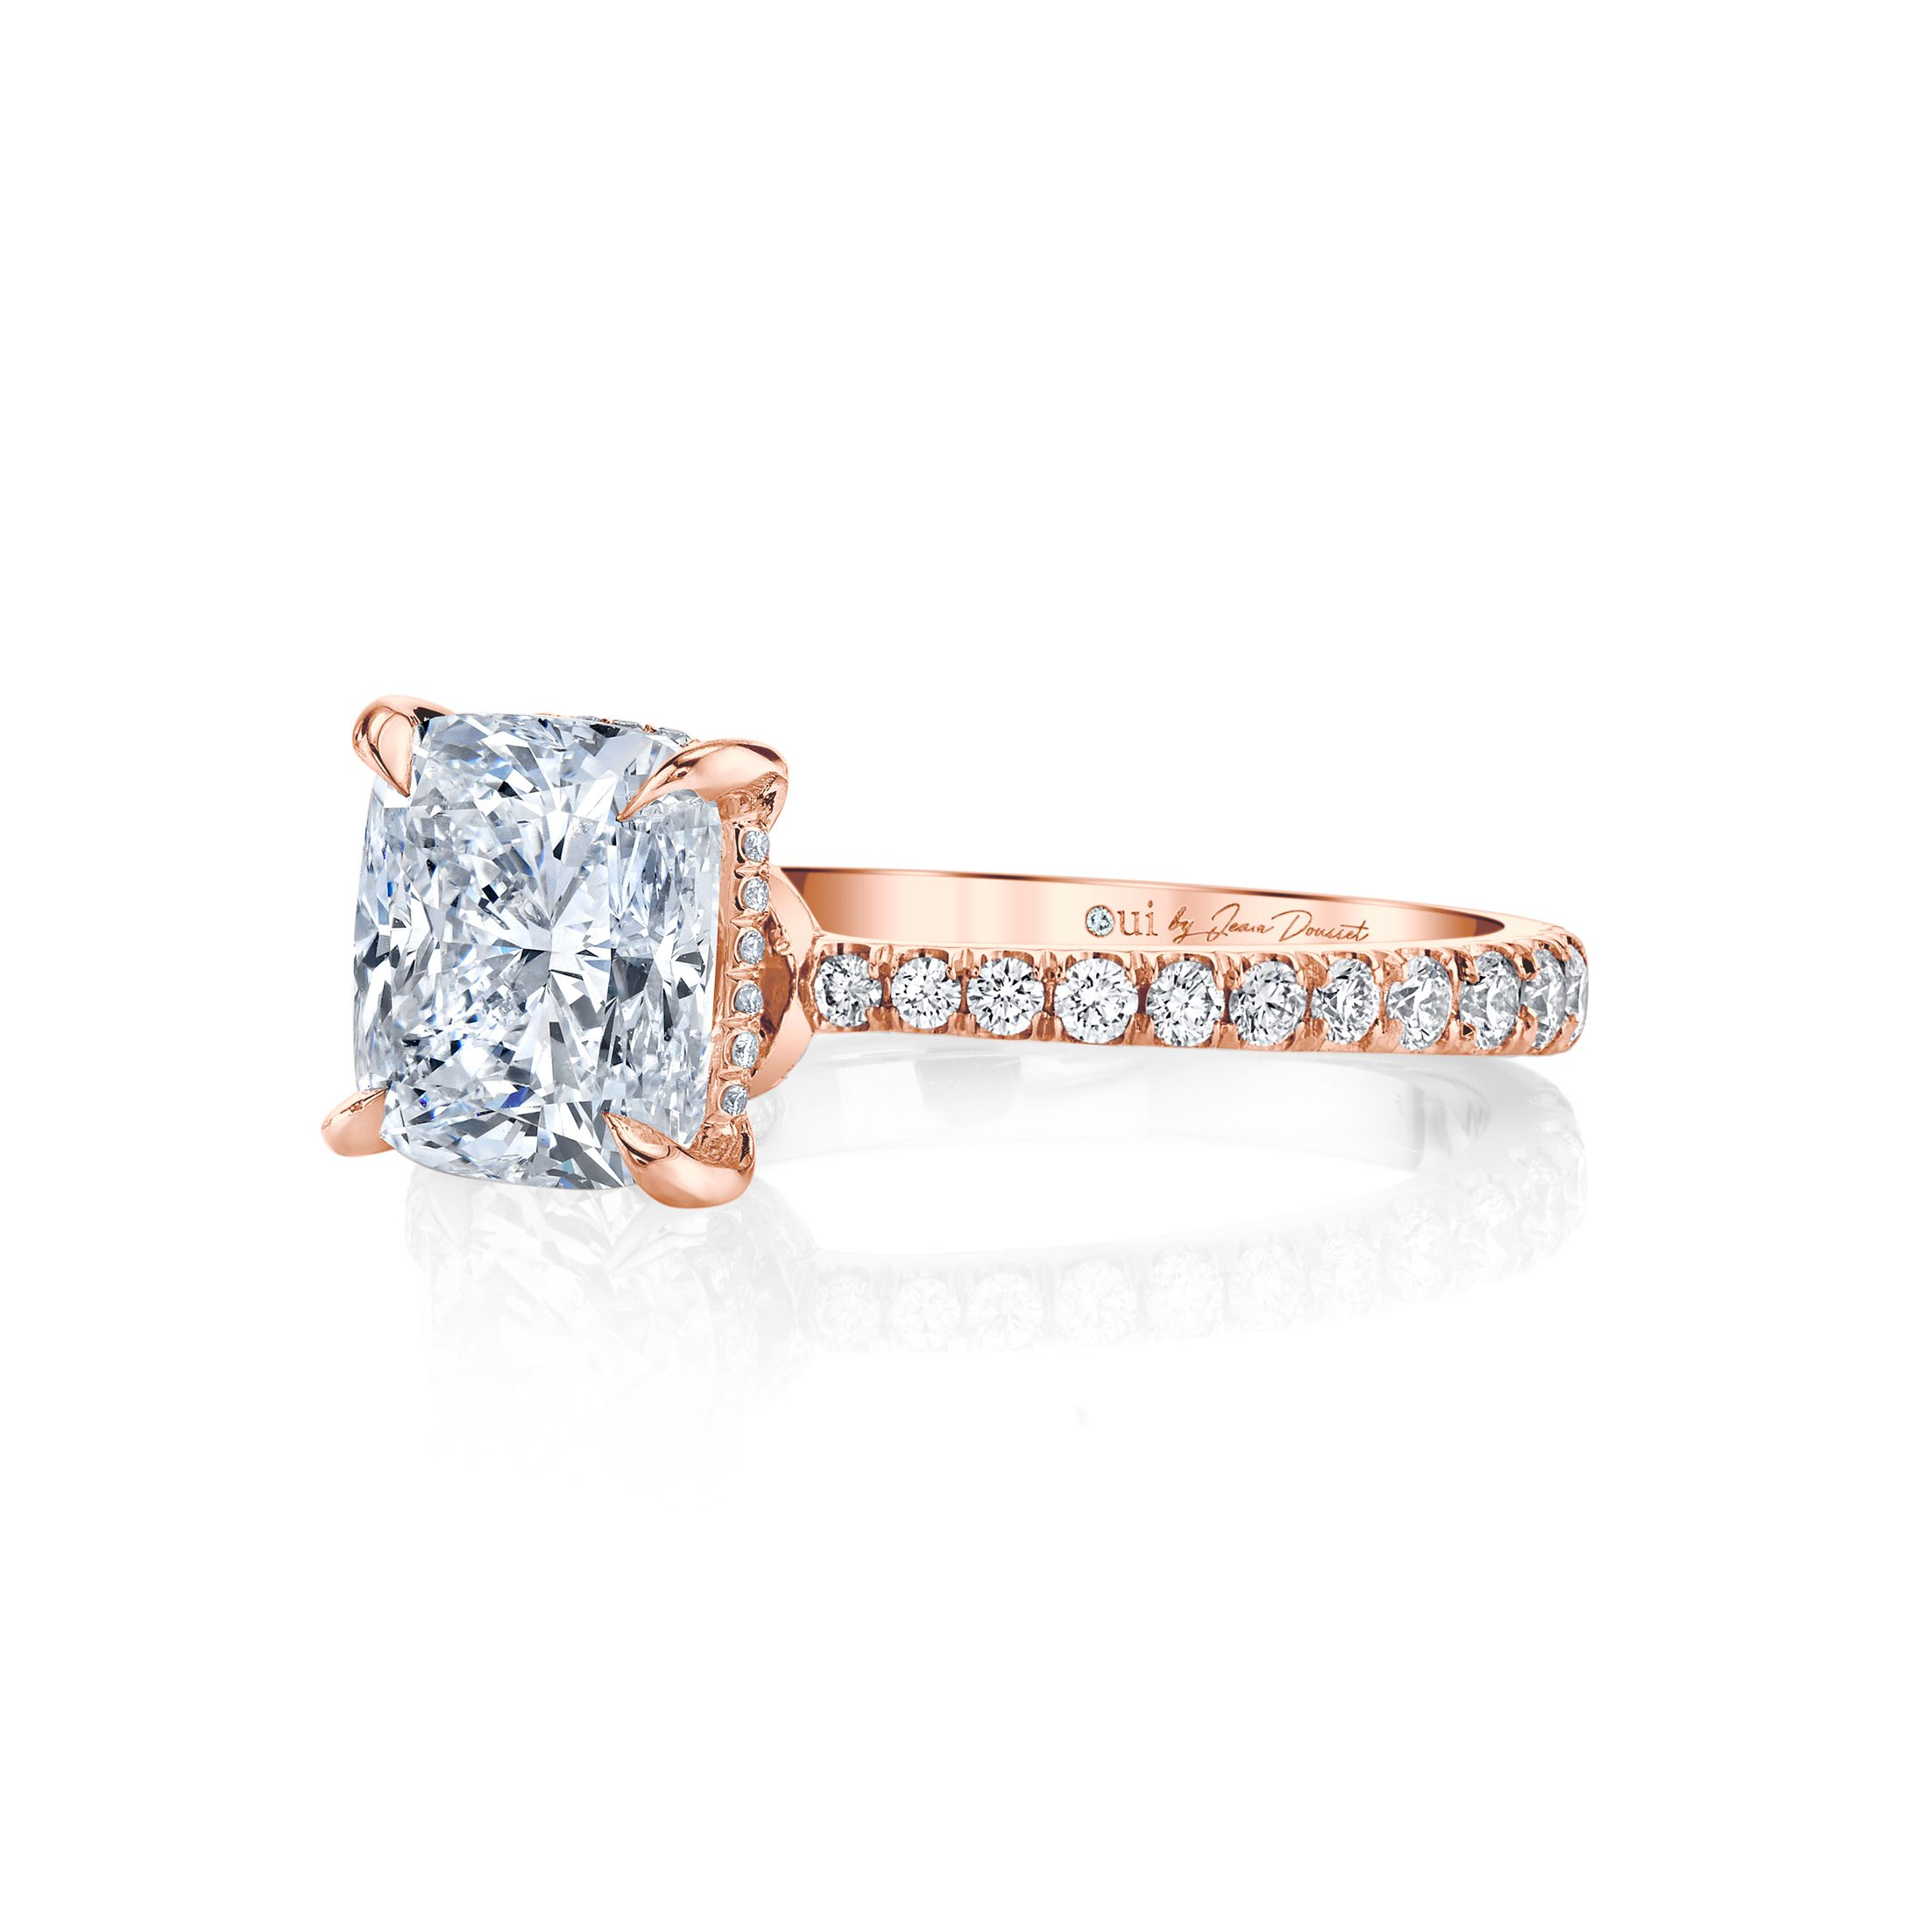 Eloise Cushion Solitaire Engagement Ring with a diamond pavé band in 18k Rose Gold Side View by Oui by Jean Dousset